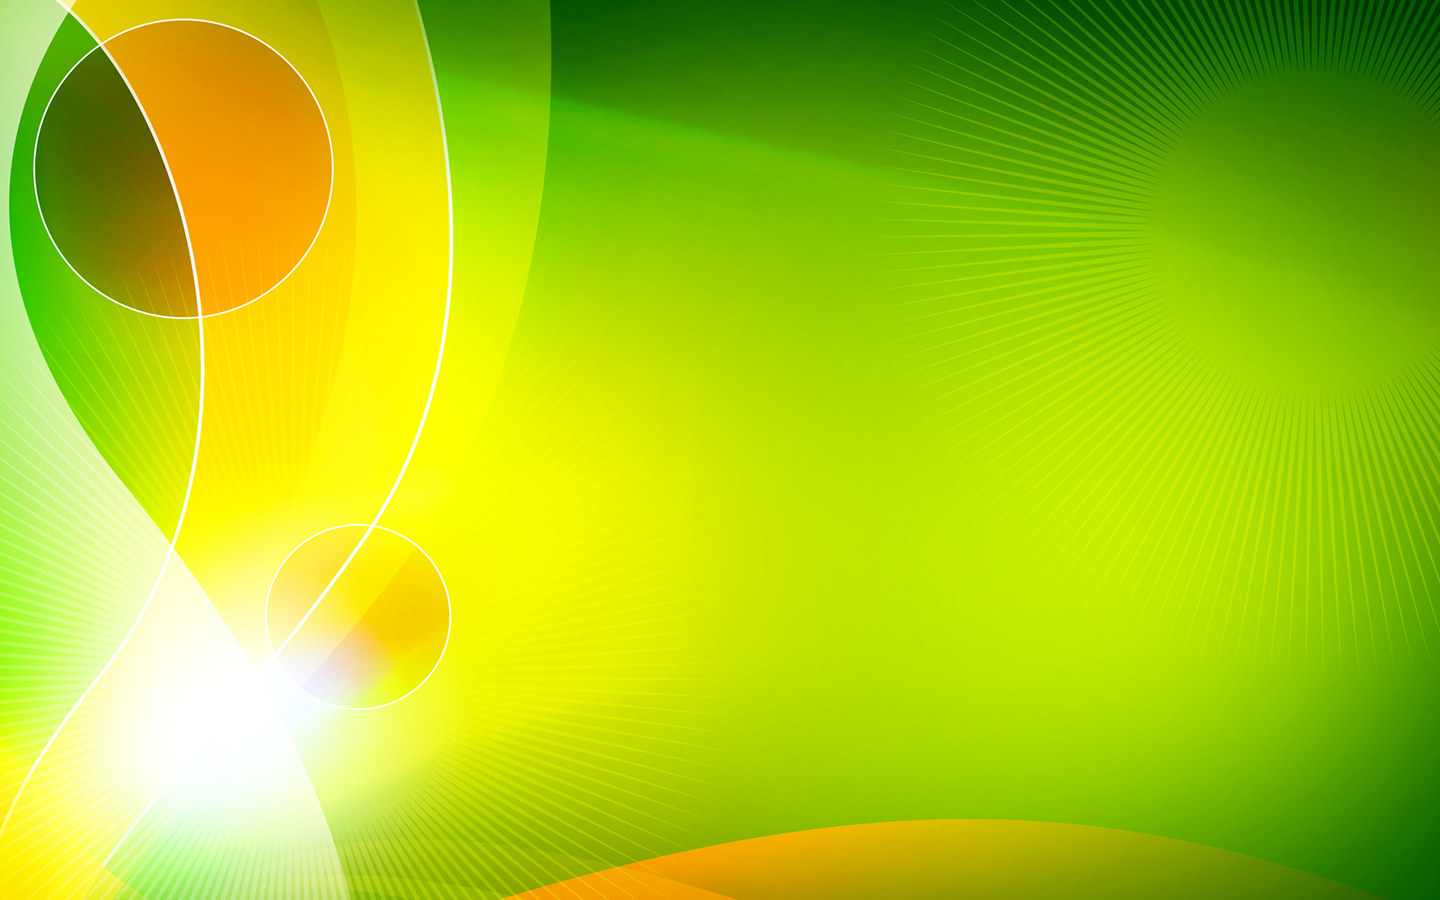 Green Background Vectors, Photos and PSD files  Free Download 1440x900